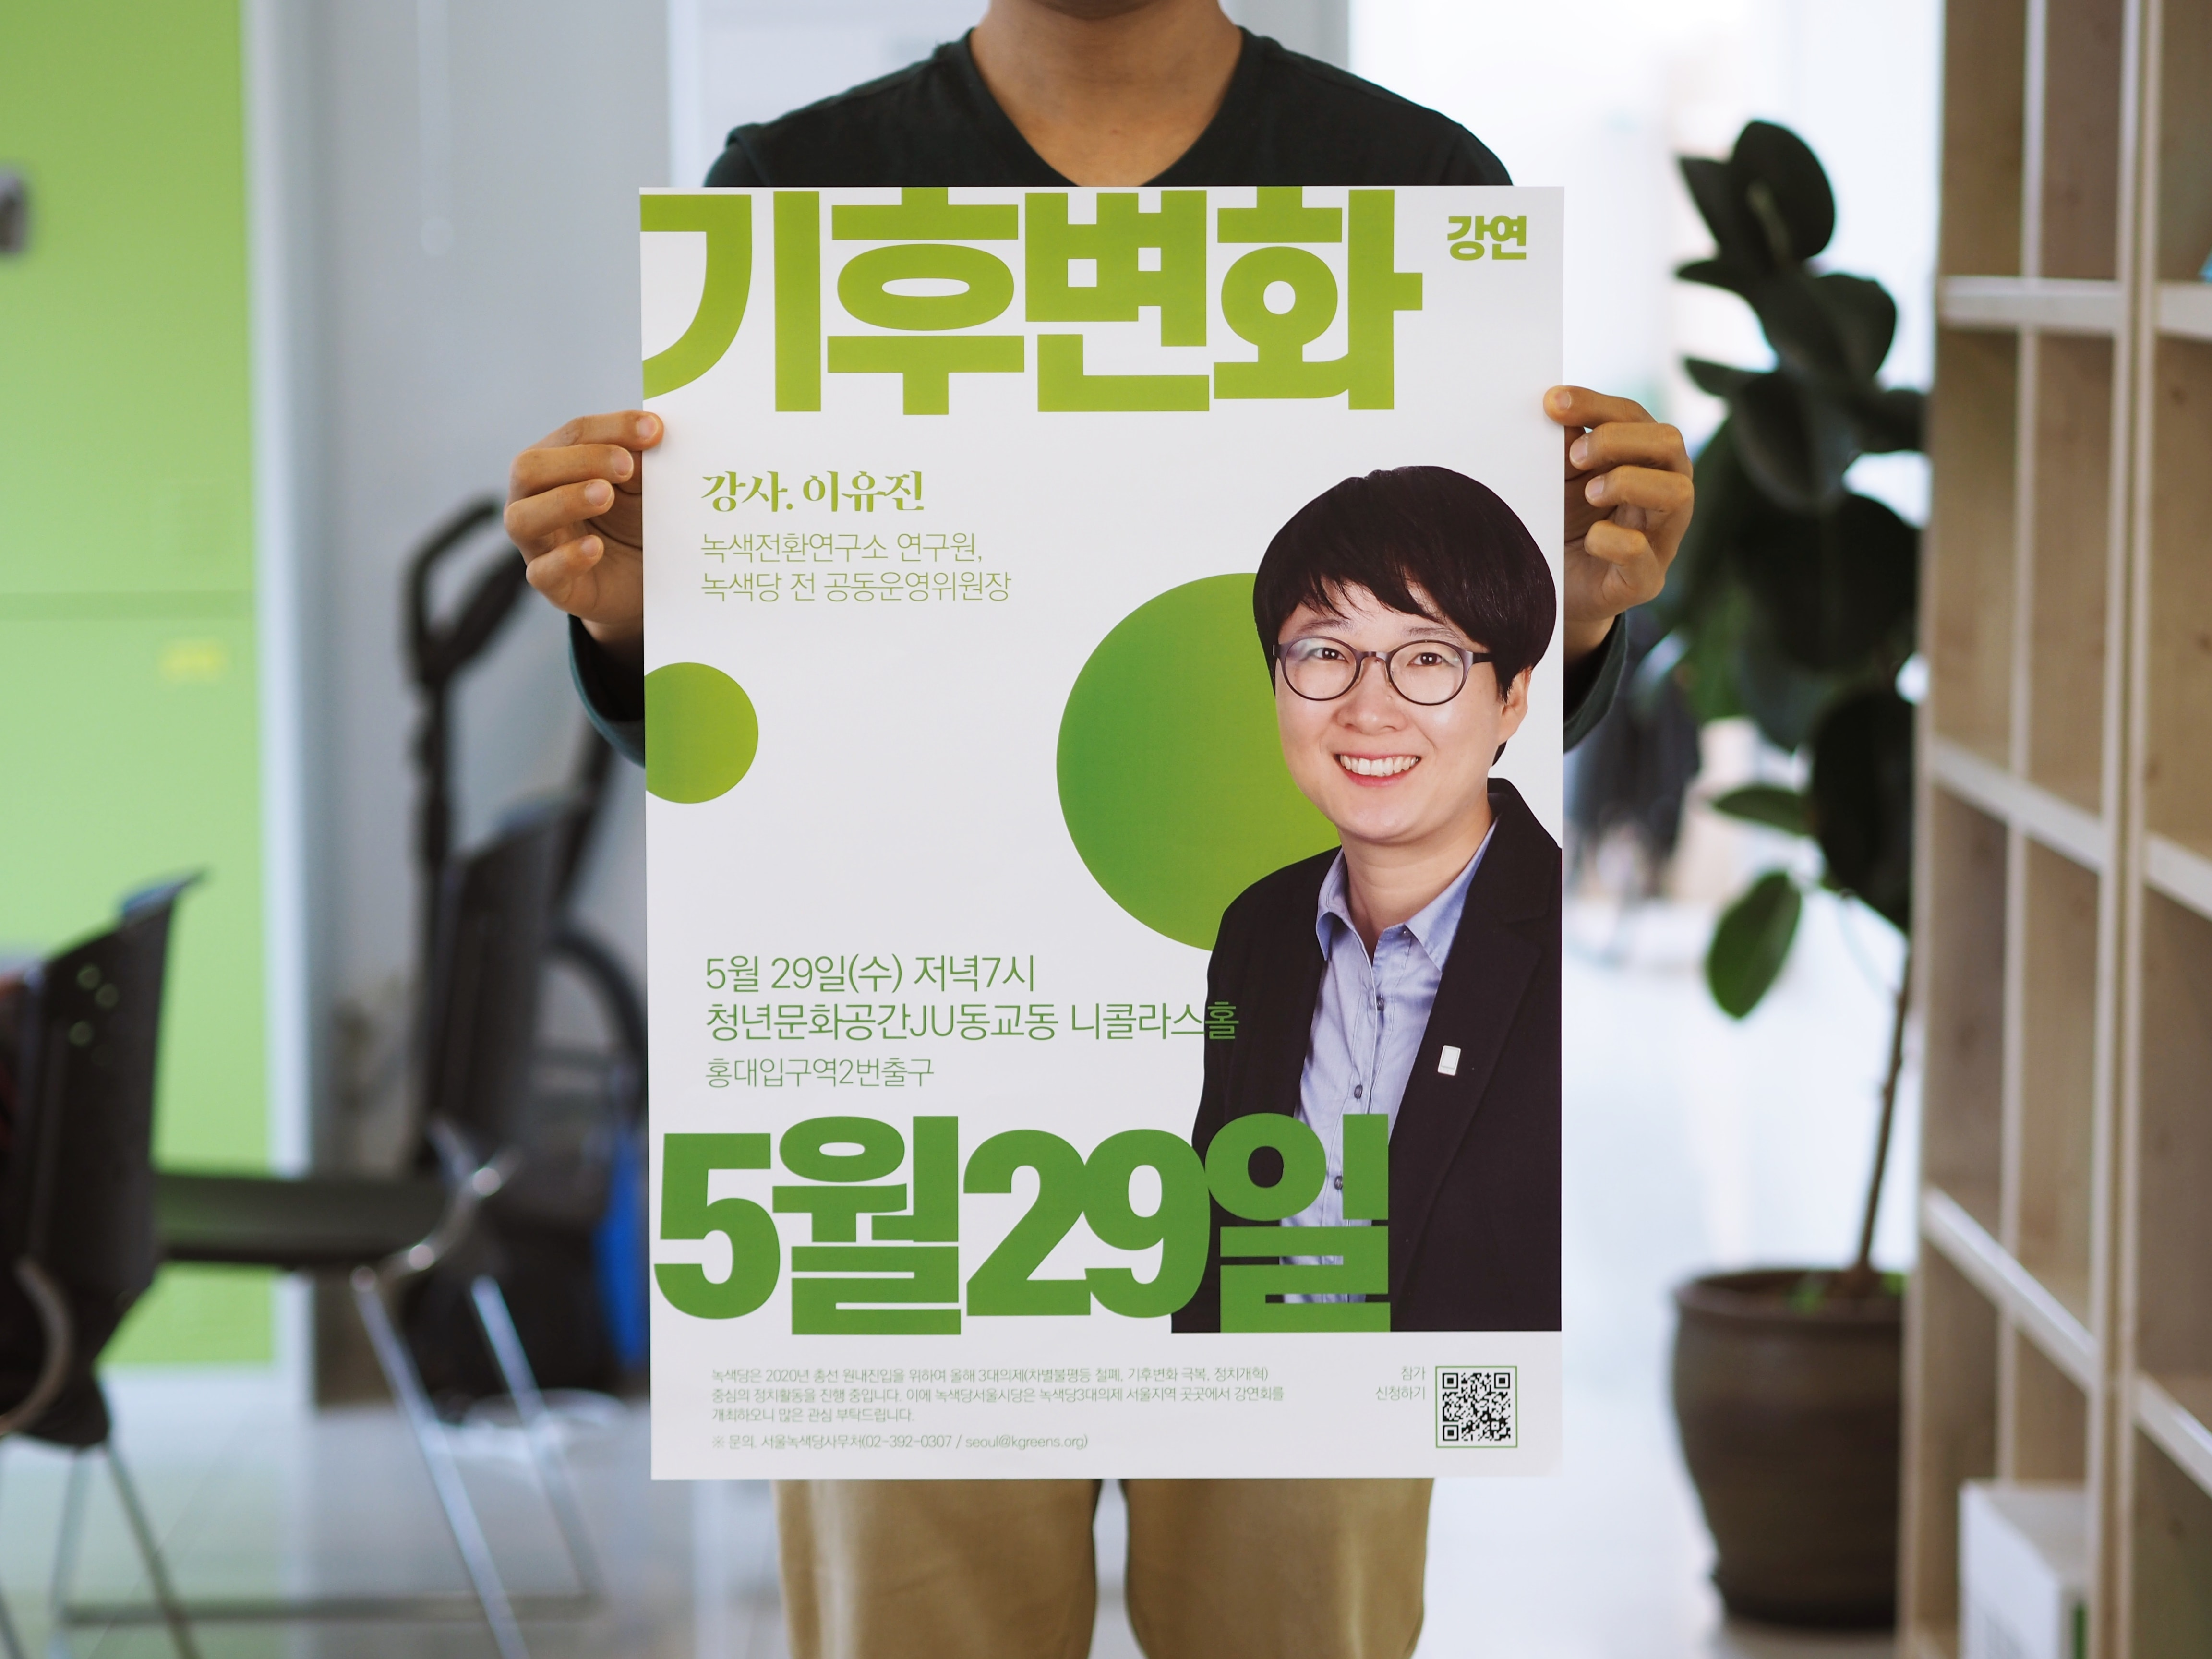 standing person holding poster with smiling man photo and Hangul texts